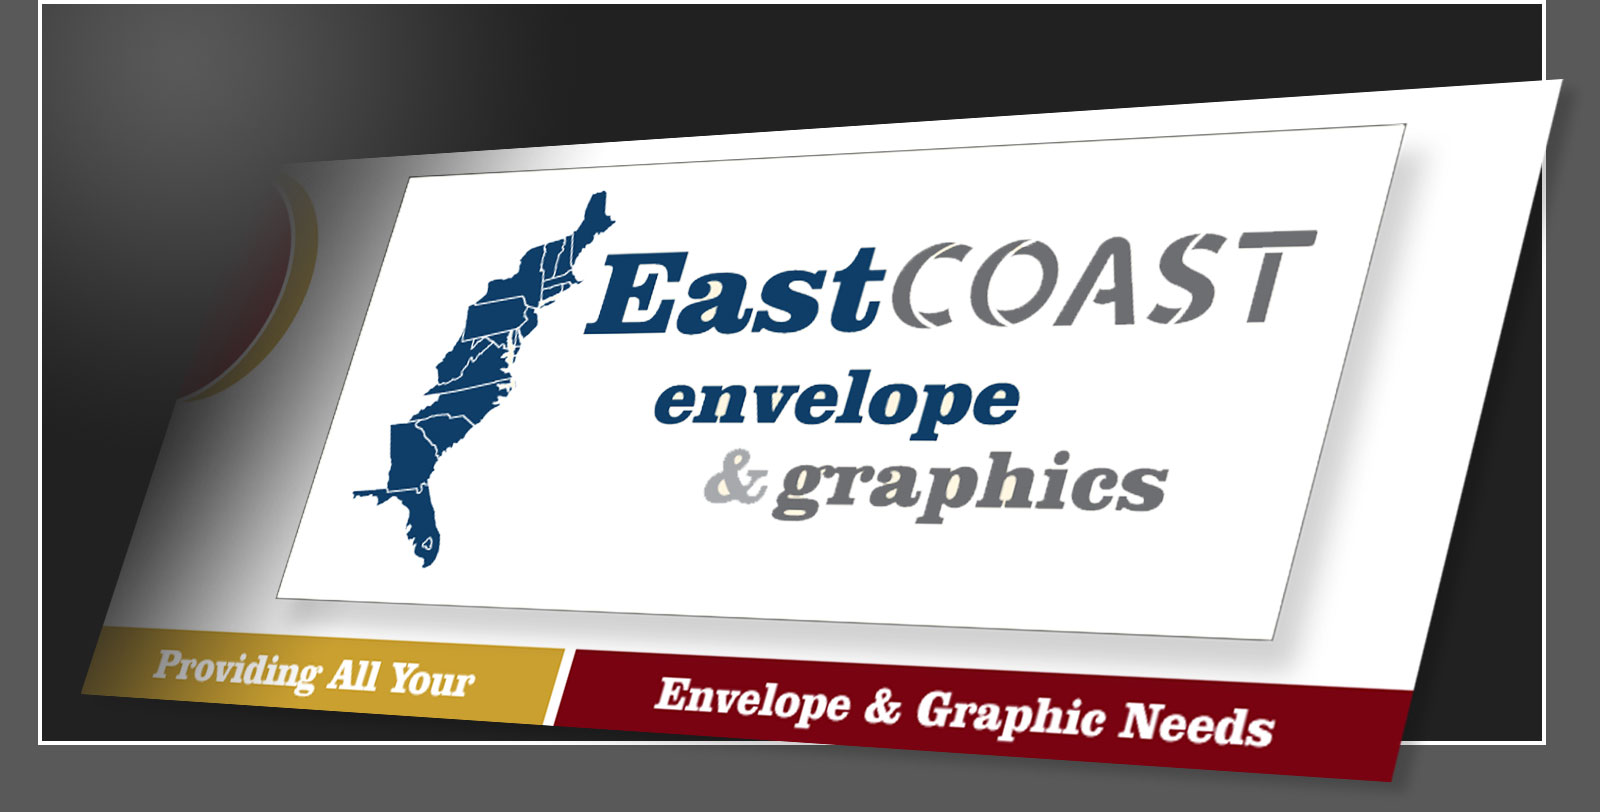 East Coast Envelope & Graphics Providing All Your Envelope & Graphic Needs